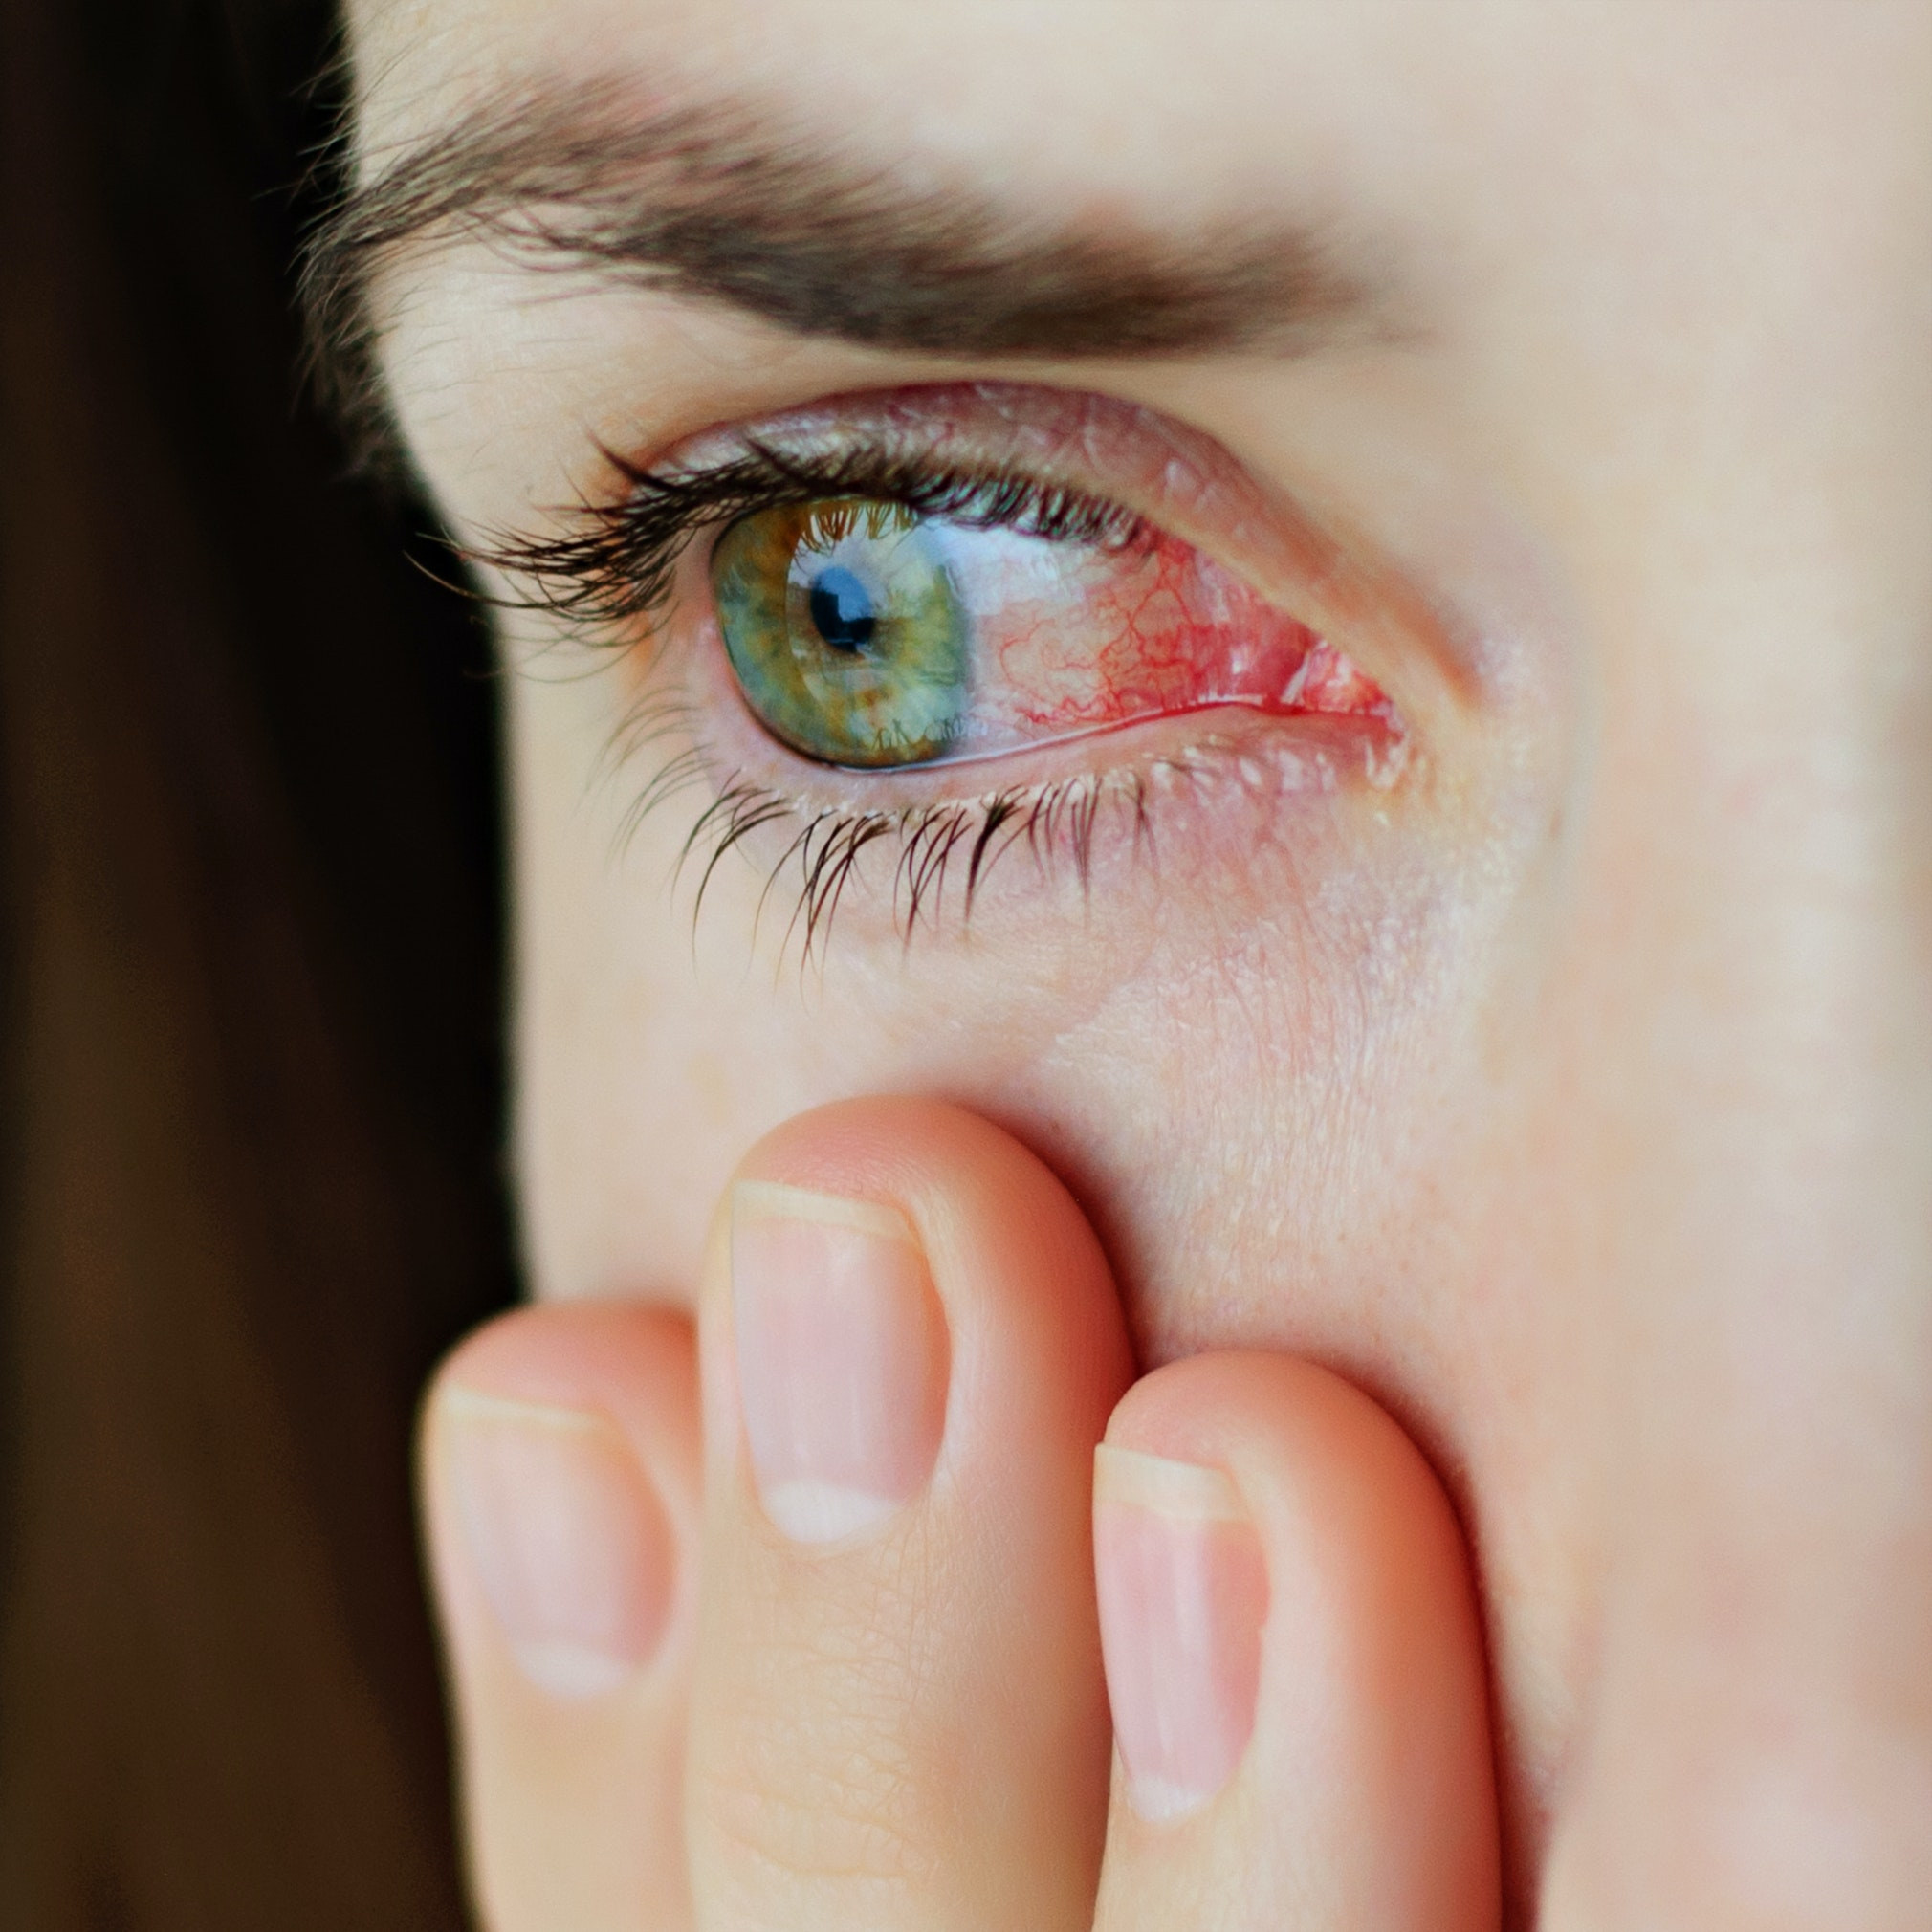 An image depicting a person suffering from itch in one eye symptoms